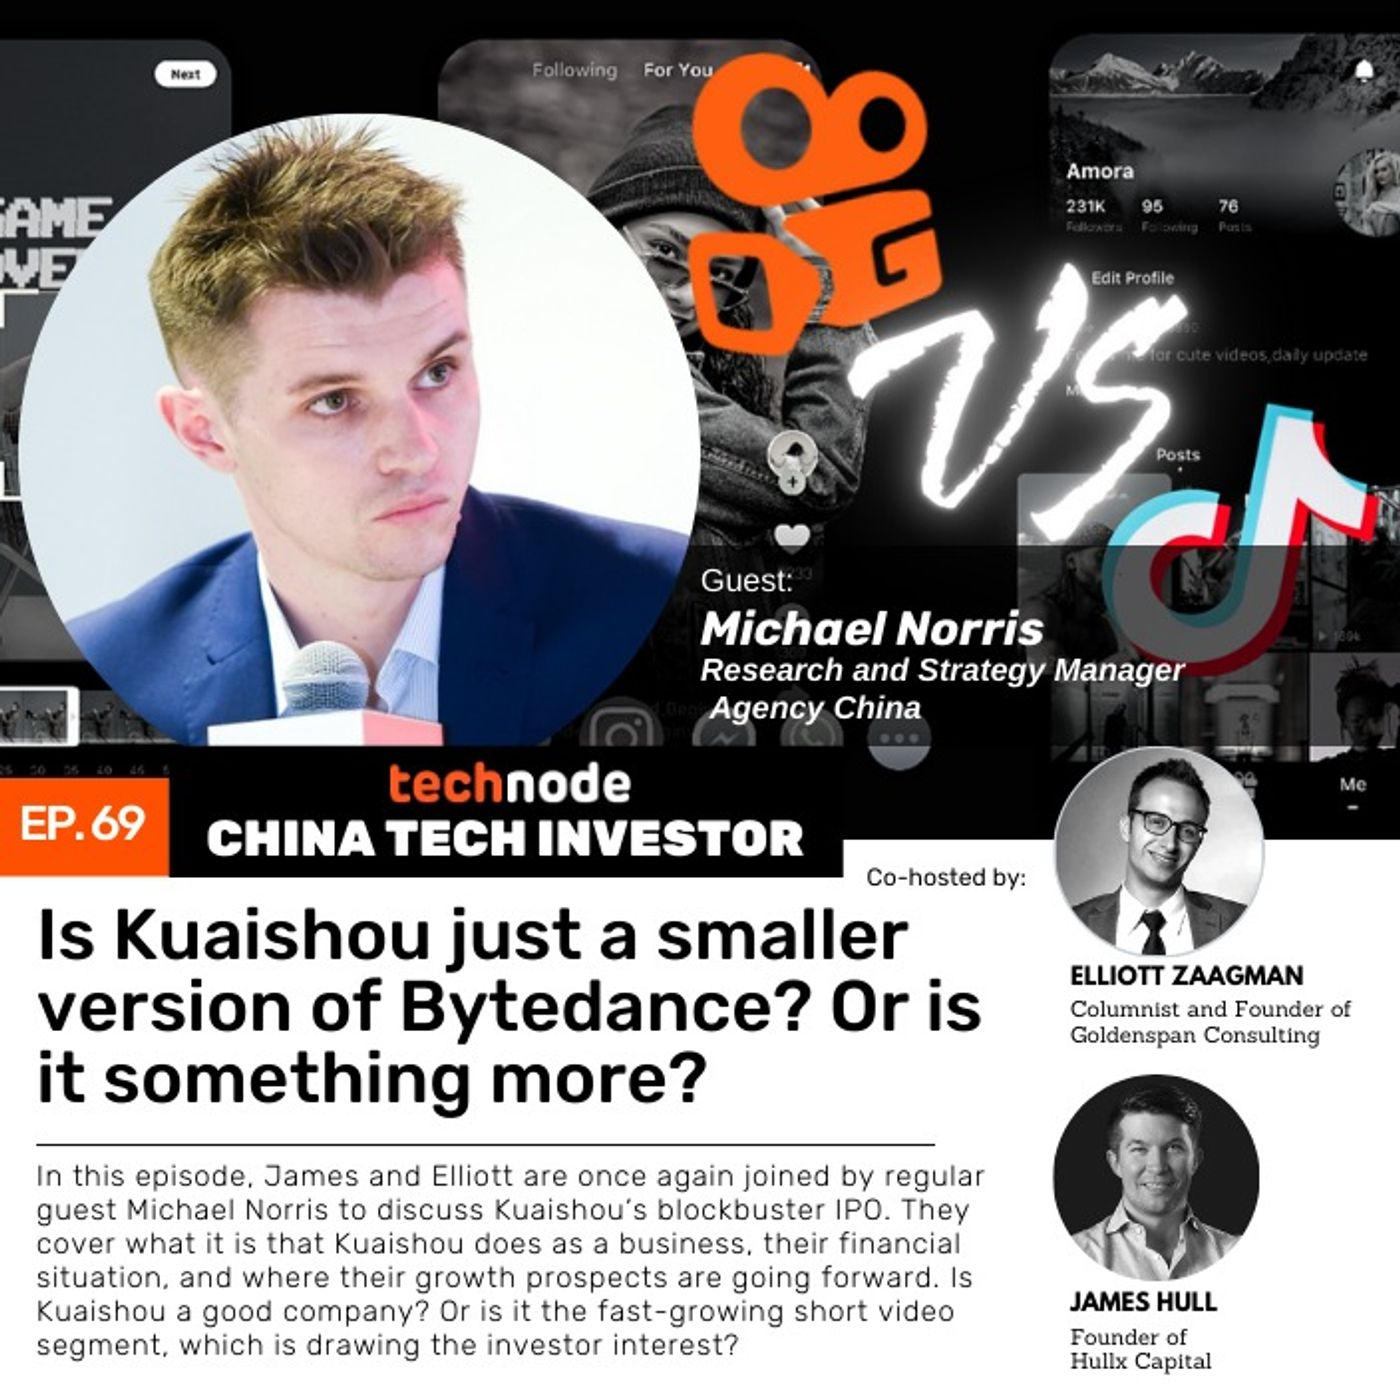 CTI 69: Is Kuaishou just a smaller version of Bytedance? Or is it something more? With Michael Norris